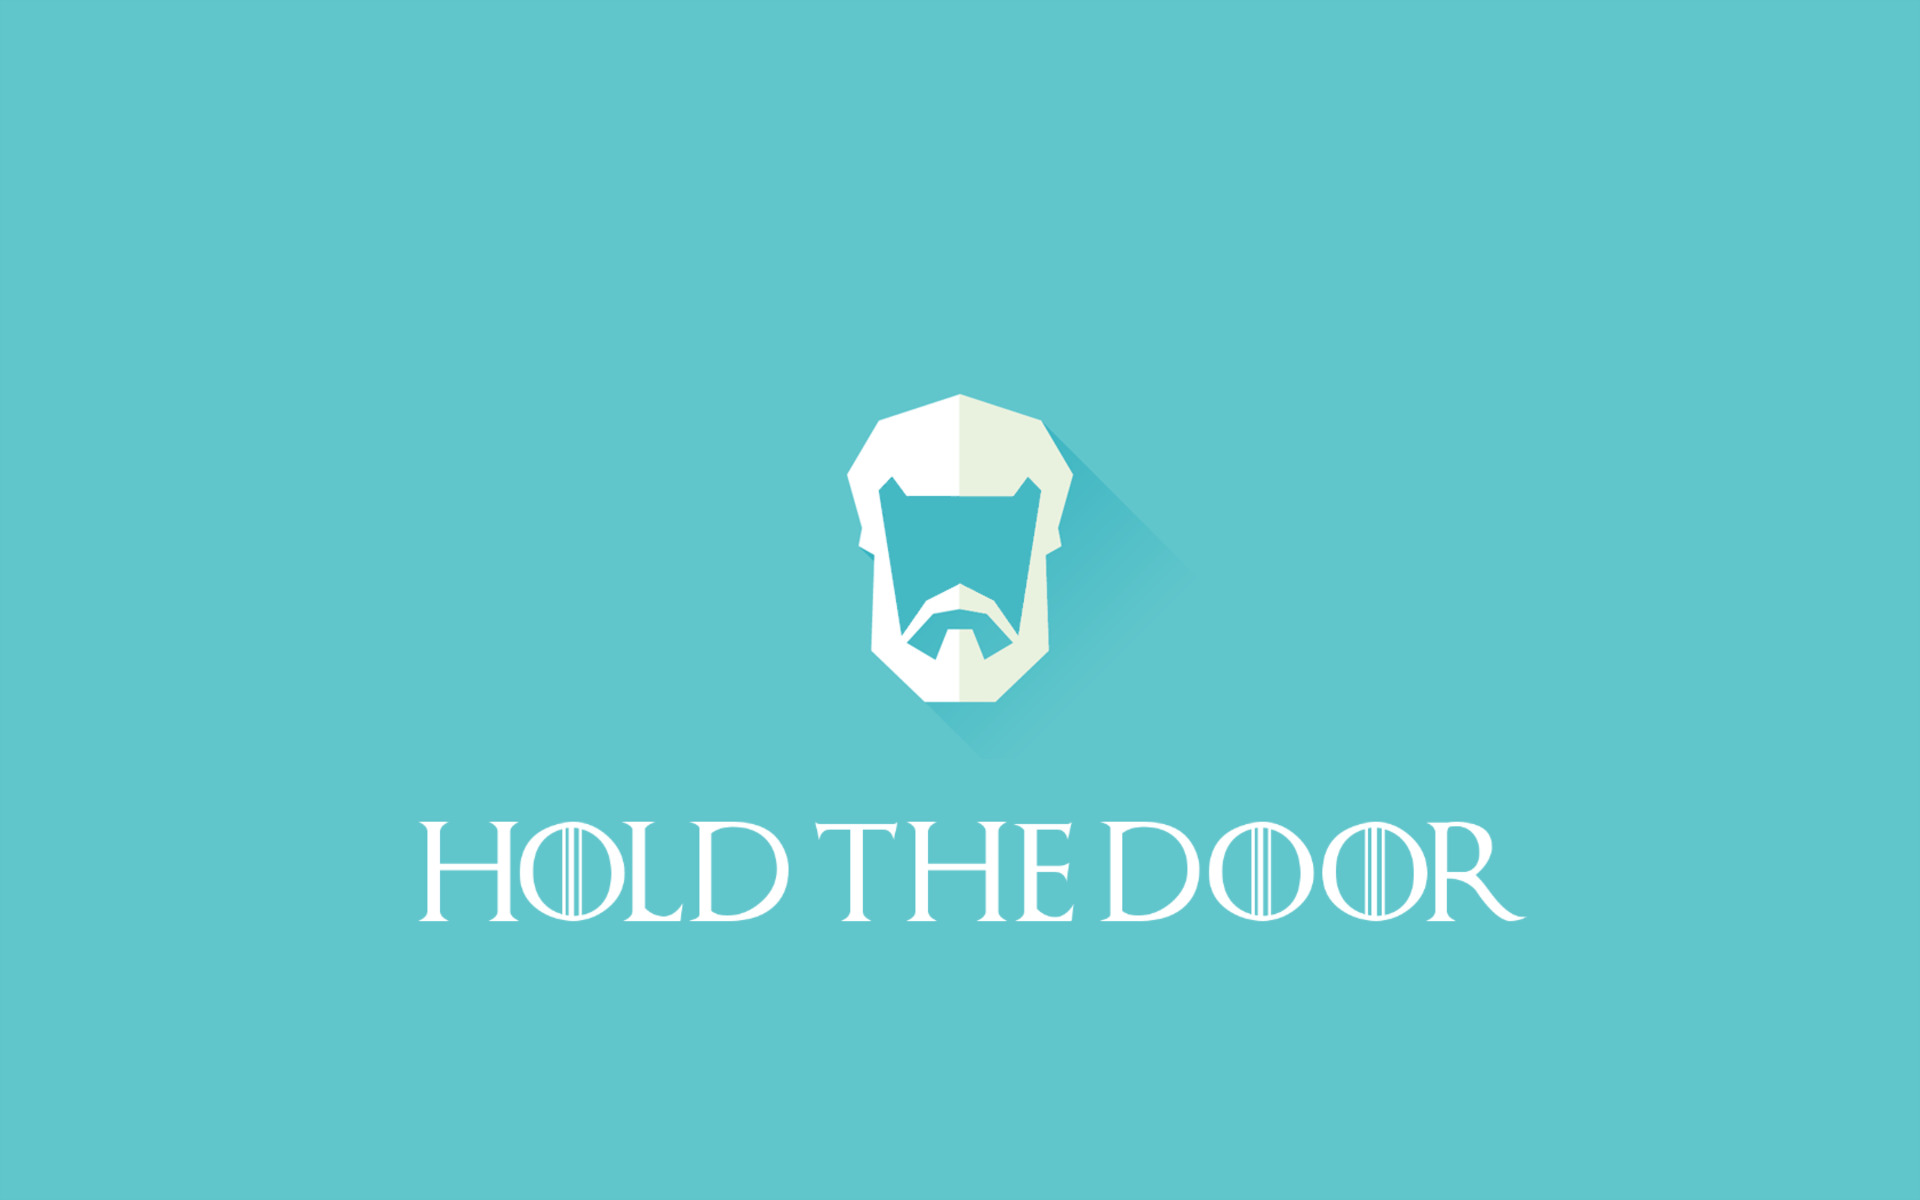 Hold The Door Game Of Thrones Image